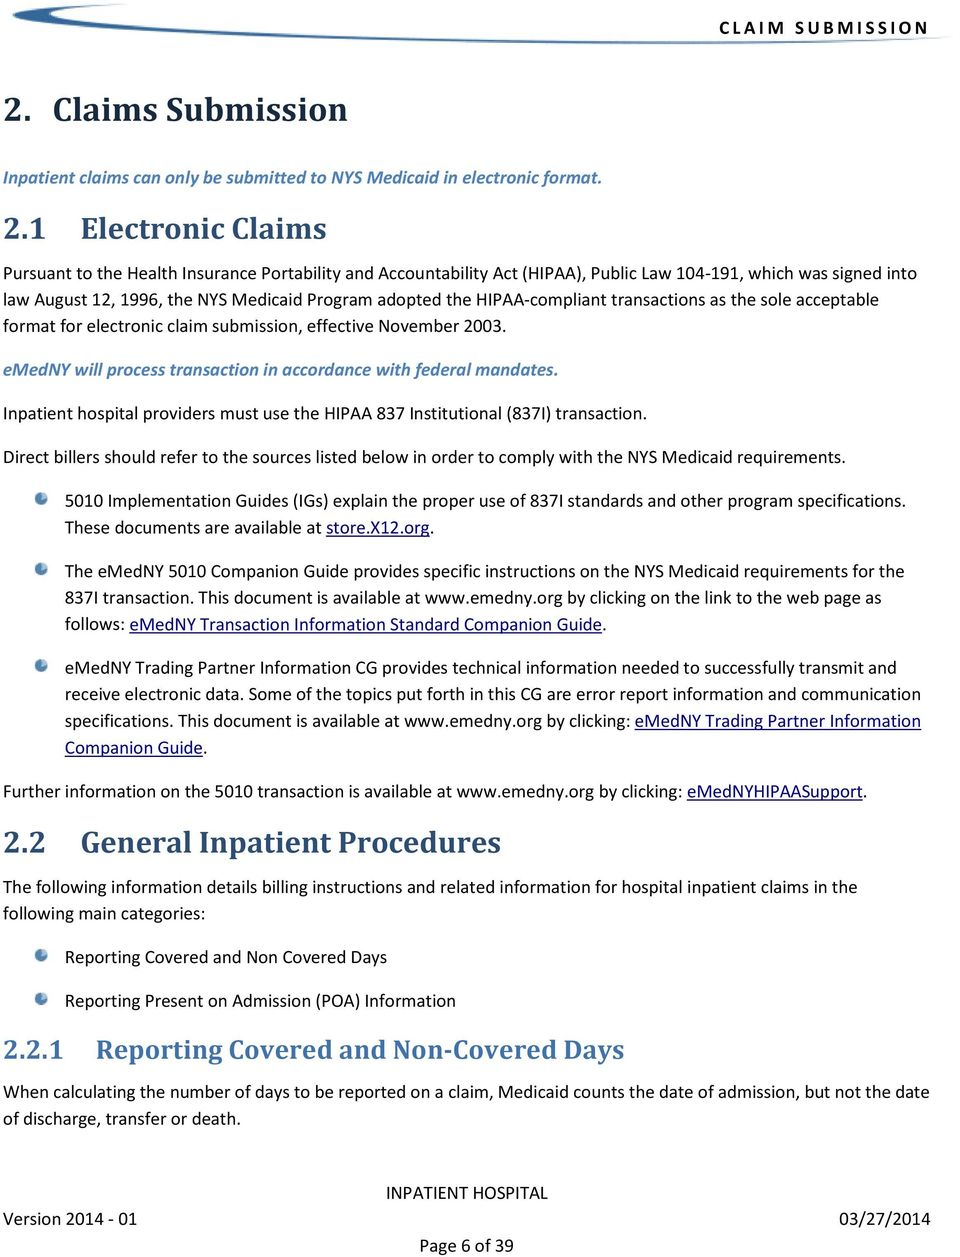 1 Electronic Claims Pursuant to the Health Insurance Portability and Accountability Act (HIPAA), Public Law 104-191, which was signed into law August 12, 1996, the NYS Medicaid Program adopted the